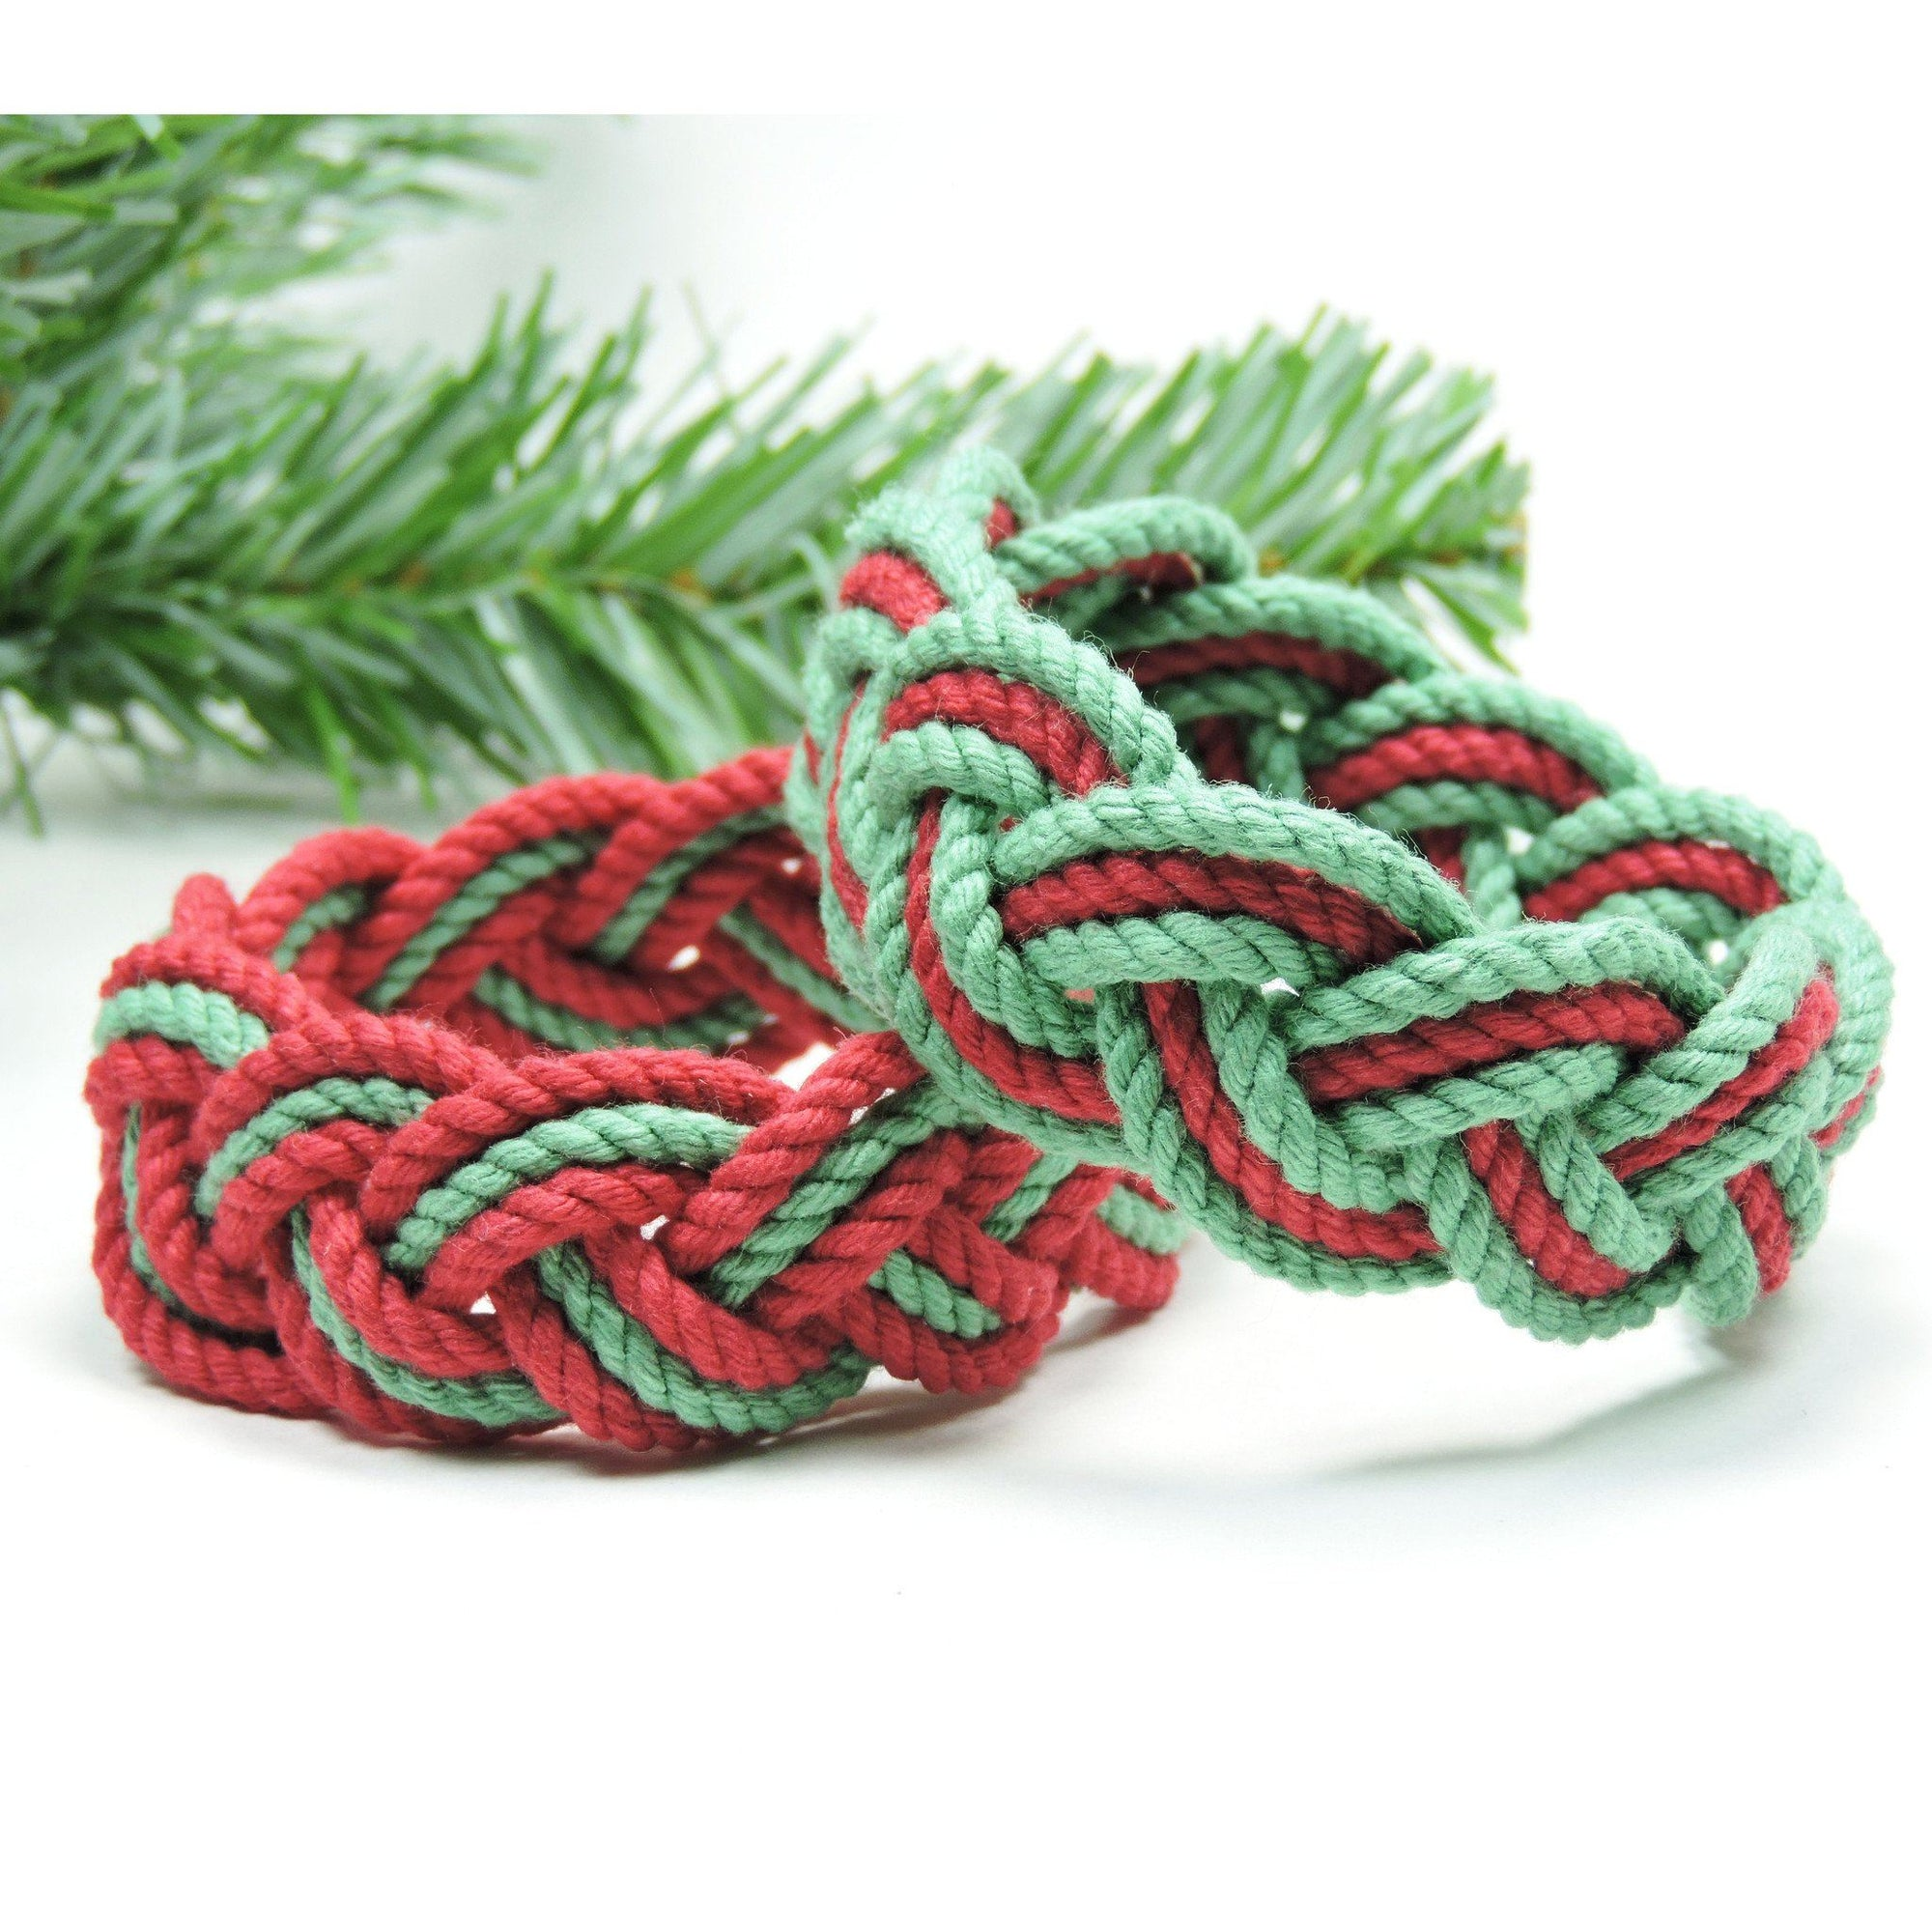 Nautical Striped Sailor Knot Bracelet, Christmas Colors Handmade sailor knot American Made in Mystic, CT $ 6.00